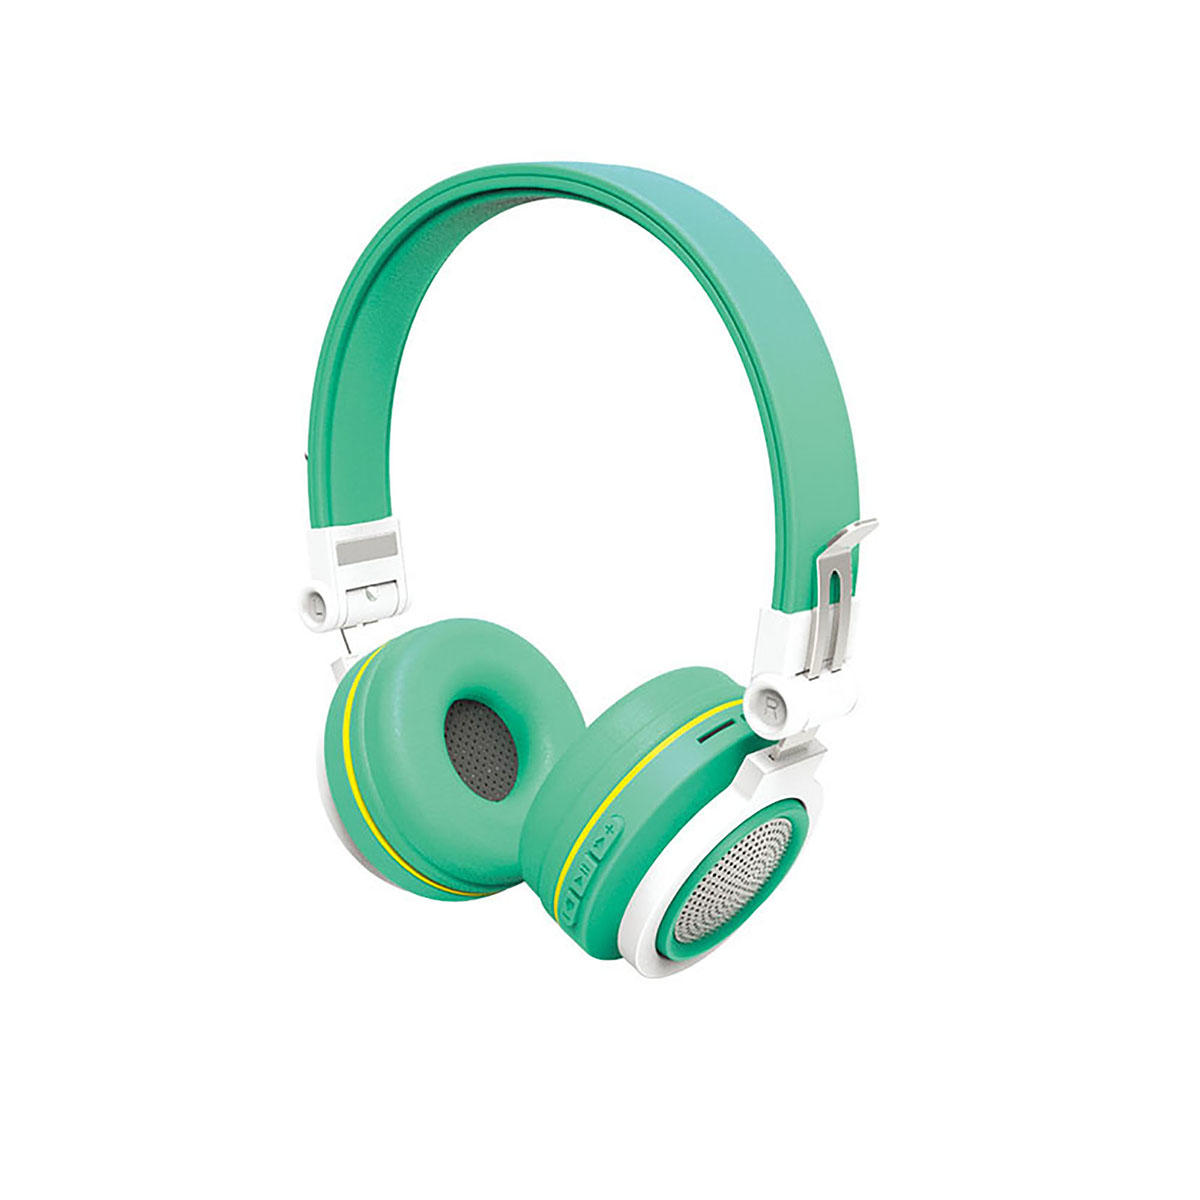 YueMai Acoustic Technology workout earbuds series for kids and adults